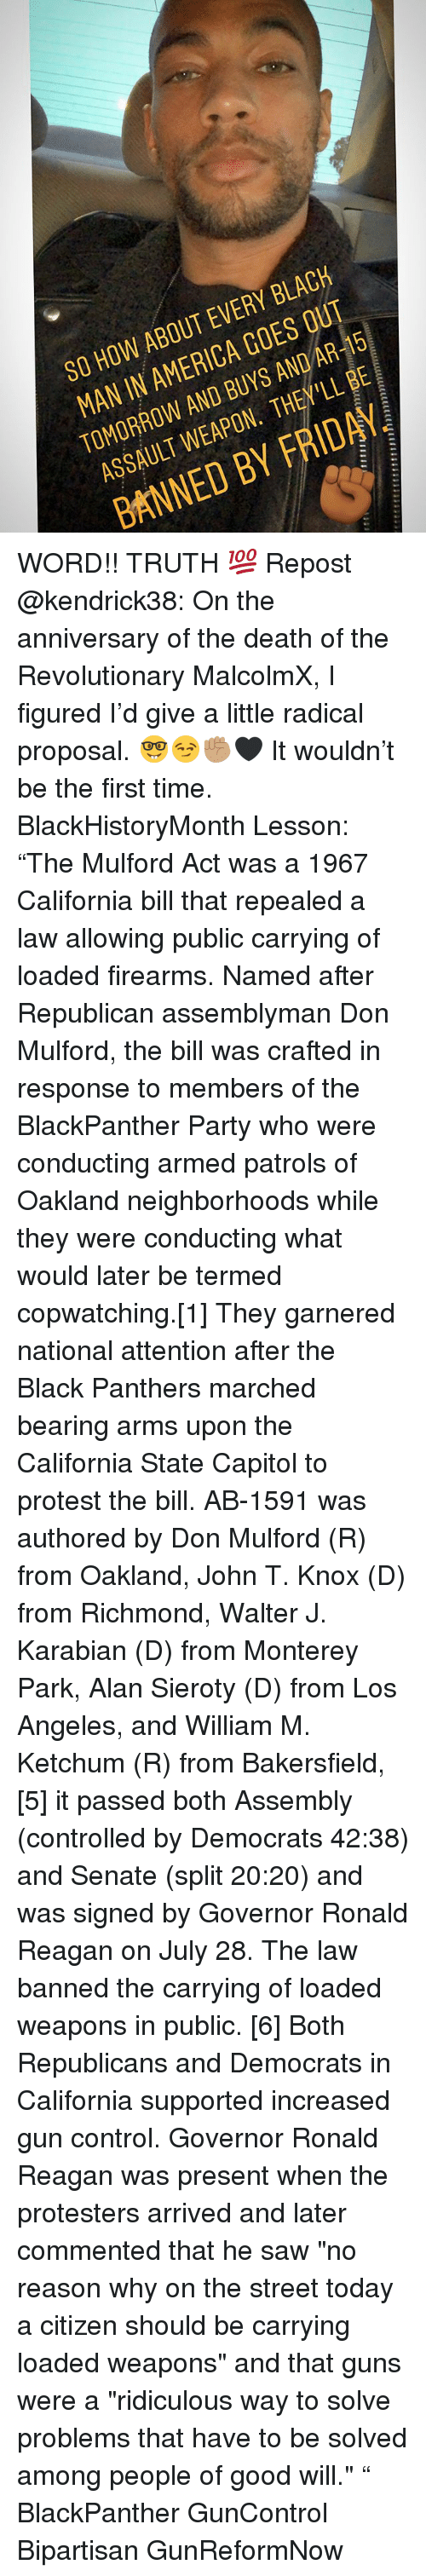 """richmond: SO HOW ABOUT EVERY BLACH  MAN IN AMERICA GOES OUT  TOMORROW AND BUYS AND AR-15  ASSAULT WEAPON. THEY'LL BE  BANNED BY FRIDAY WORD!! TRUTH 💯 Repost @kendrick38: On the anniversary of the death of the Revolutionary MalcolmX, I figured I'd give a little radical proposal. 🤓😏✊🏽🖤 It wouldn't be the first time. BlackHistoryMonth Lesson: """"The Mulford Act was a 1967 California bill that repealed a law allowing public carrying of loaded firearms. Named after Republican assemblyman Don Mulford, the bill was crafted in response to members of the BlackPanther Party who were conducting armed patrols of Oakland neighborhoods while they were conducting what would later be termed copwatching.[1] They garnered national attention after the Black Panthers marched bearing arms upon the California State Capitol to protest the bill. AB-1591 was authored by Don Mulford (R) from Oakland, John T. Knox (D) from Richmond, Walter J. Karabian (D) from Monterey Park, Alan Sieroty (D) from Los Angeles, and William M. Ketchum (R) from Bakersfield,[5] it passed both Assembly (controlled by Democrats 42:38) and Senate (split 20:20) and was signed by Governor Ronald Reagan on July 28. The law banned the carrying of loaded weapons in public. [6] Both Republicans and Democrats in California supported increased gun control. Governor Ronald Reagan was present when the protesters arrived and later commented that he saw """"no reason why on the street today a citizen should be carrying loaded weapons"""" and that guns were a """"ridiculous way to solve problems that have to be solved among people of good will."""" """" BlackPanther GunControl Bipartisan GunReformNow"""